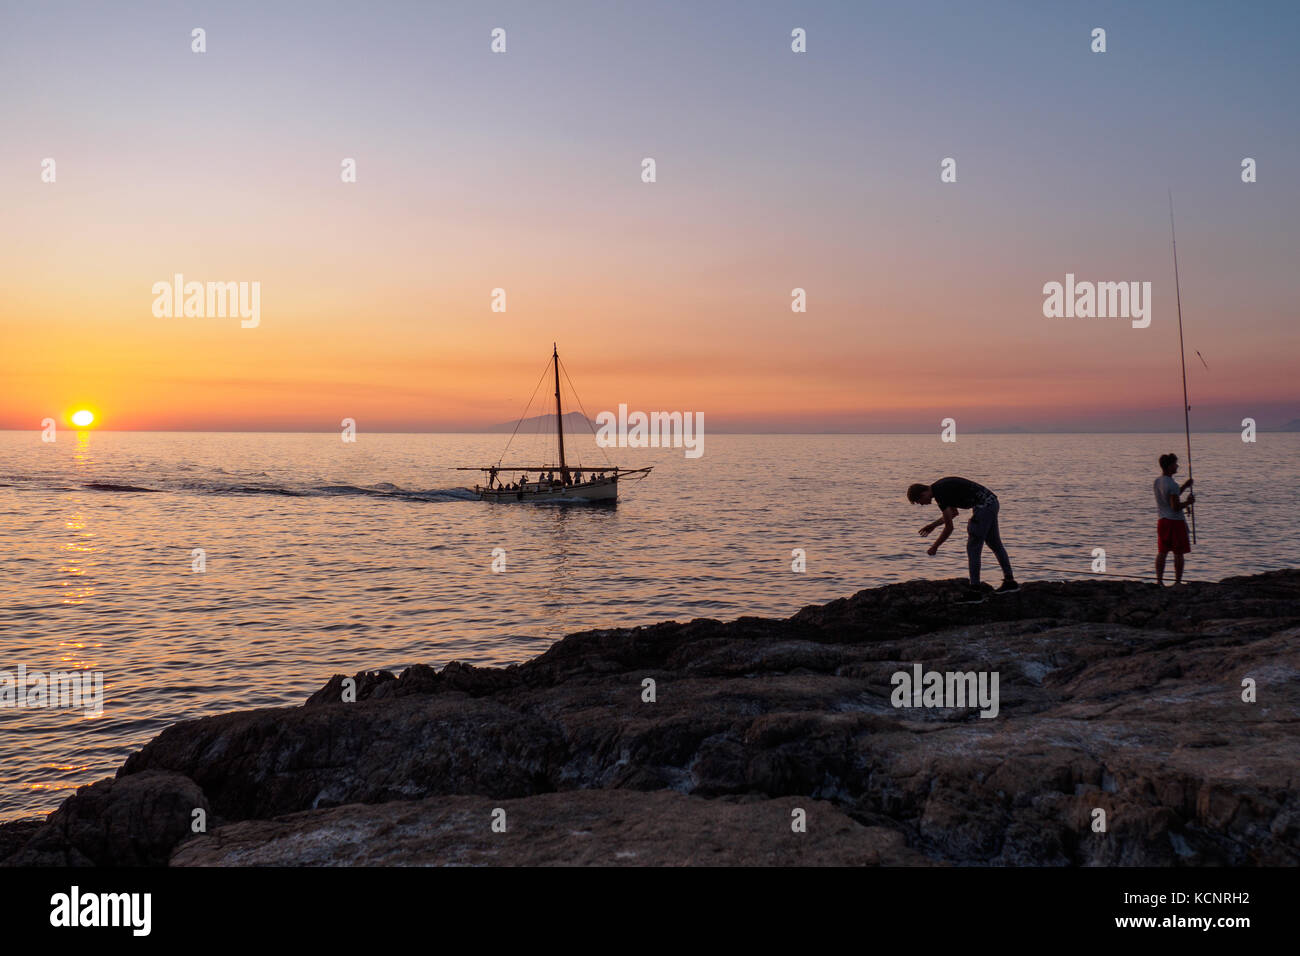 Bagni Scogliera Nervi Bagni Italia Stock Photos And Bagni Italia Stock Images Alamy